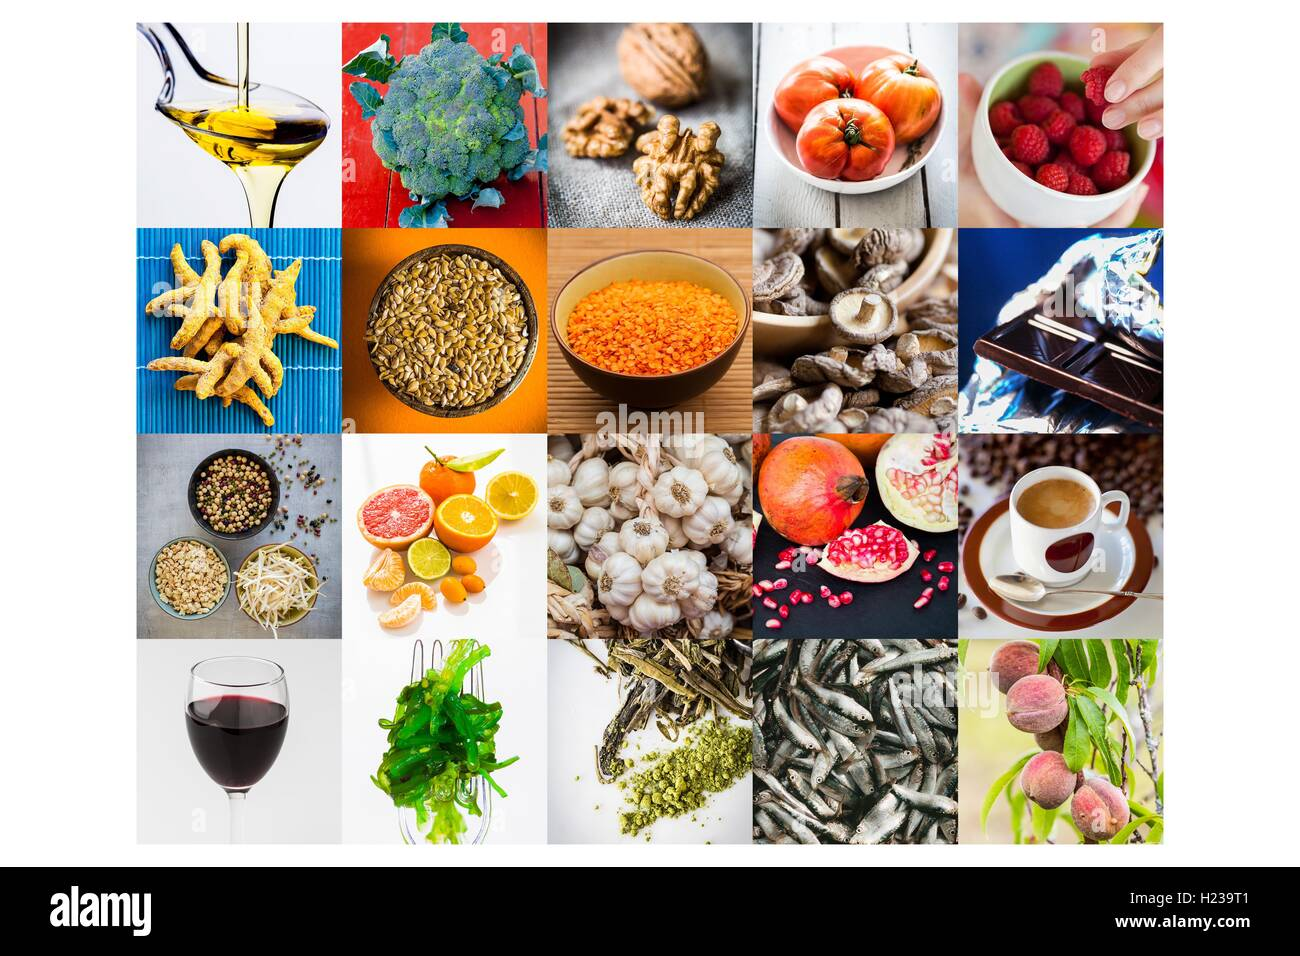 Assortment of food recommended in prevention of cancer. - Stock Image